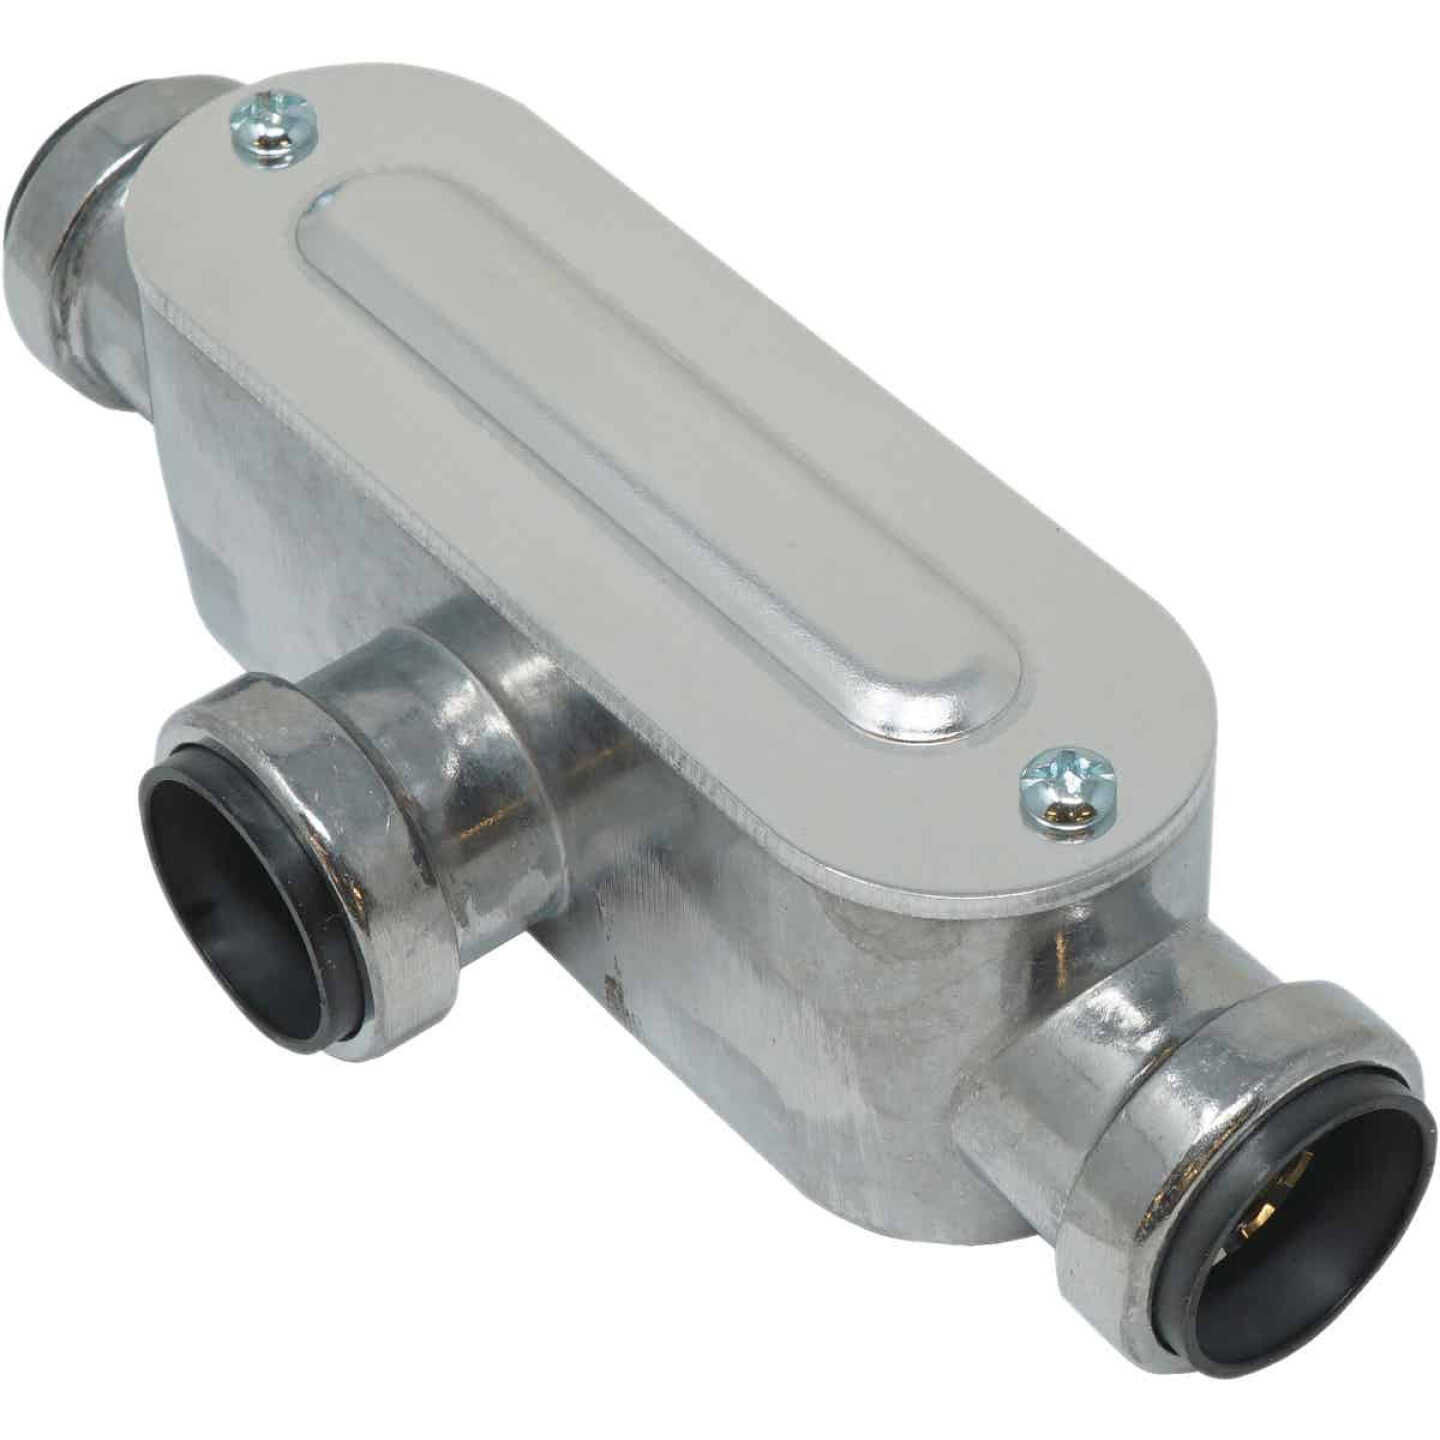 Southwire SimPush 1/2 In. EMT Push-To-Install Type-T Conduit Body Image 1